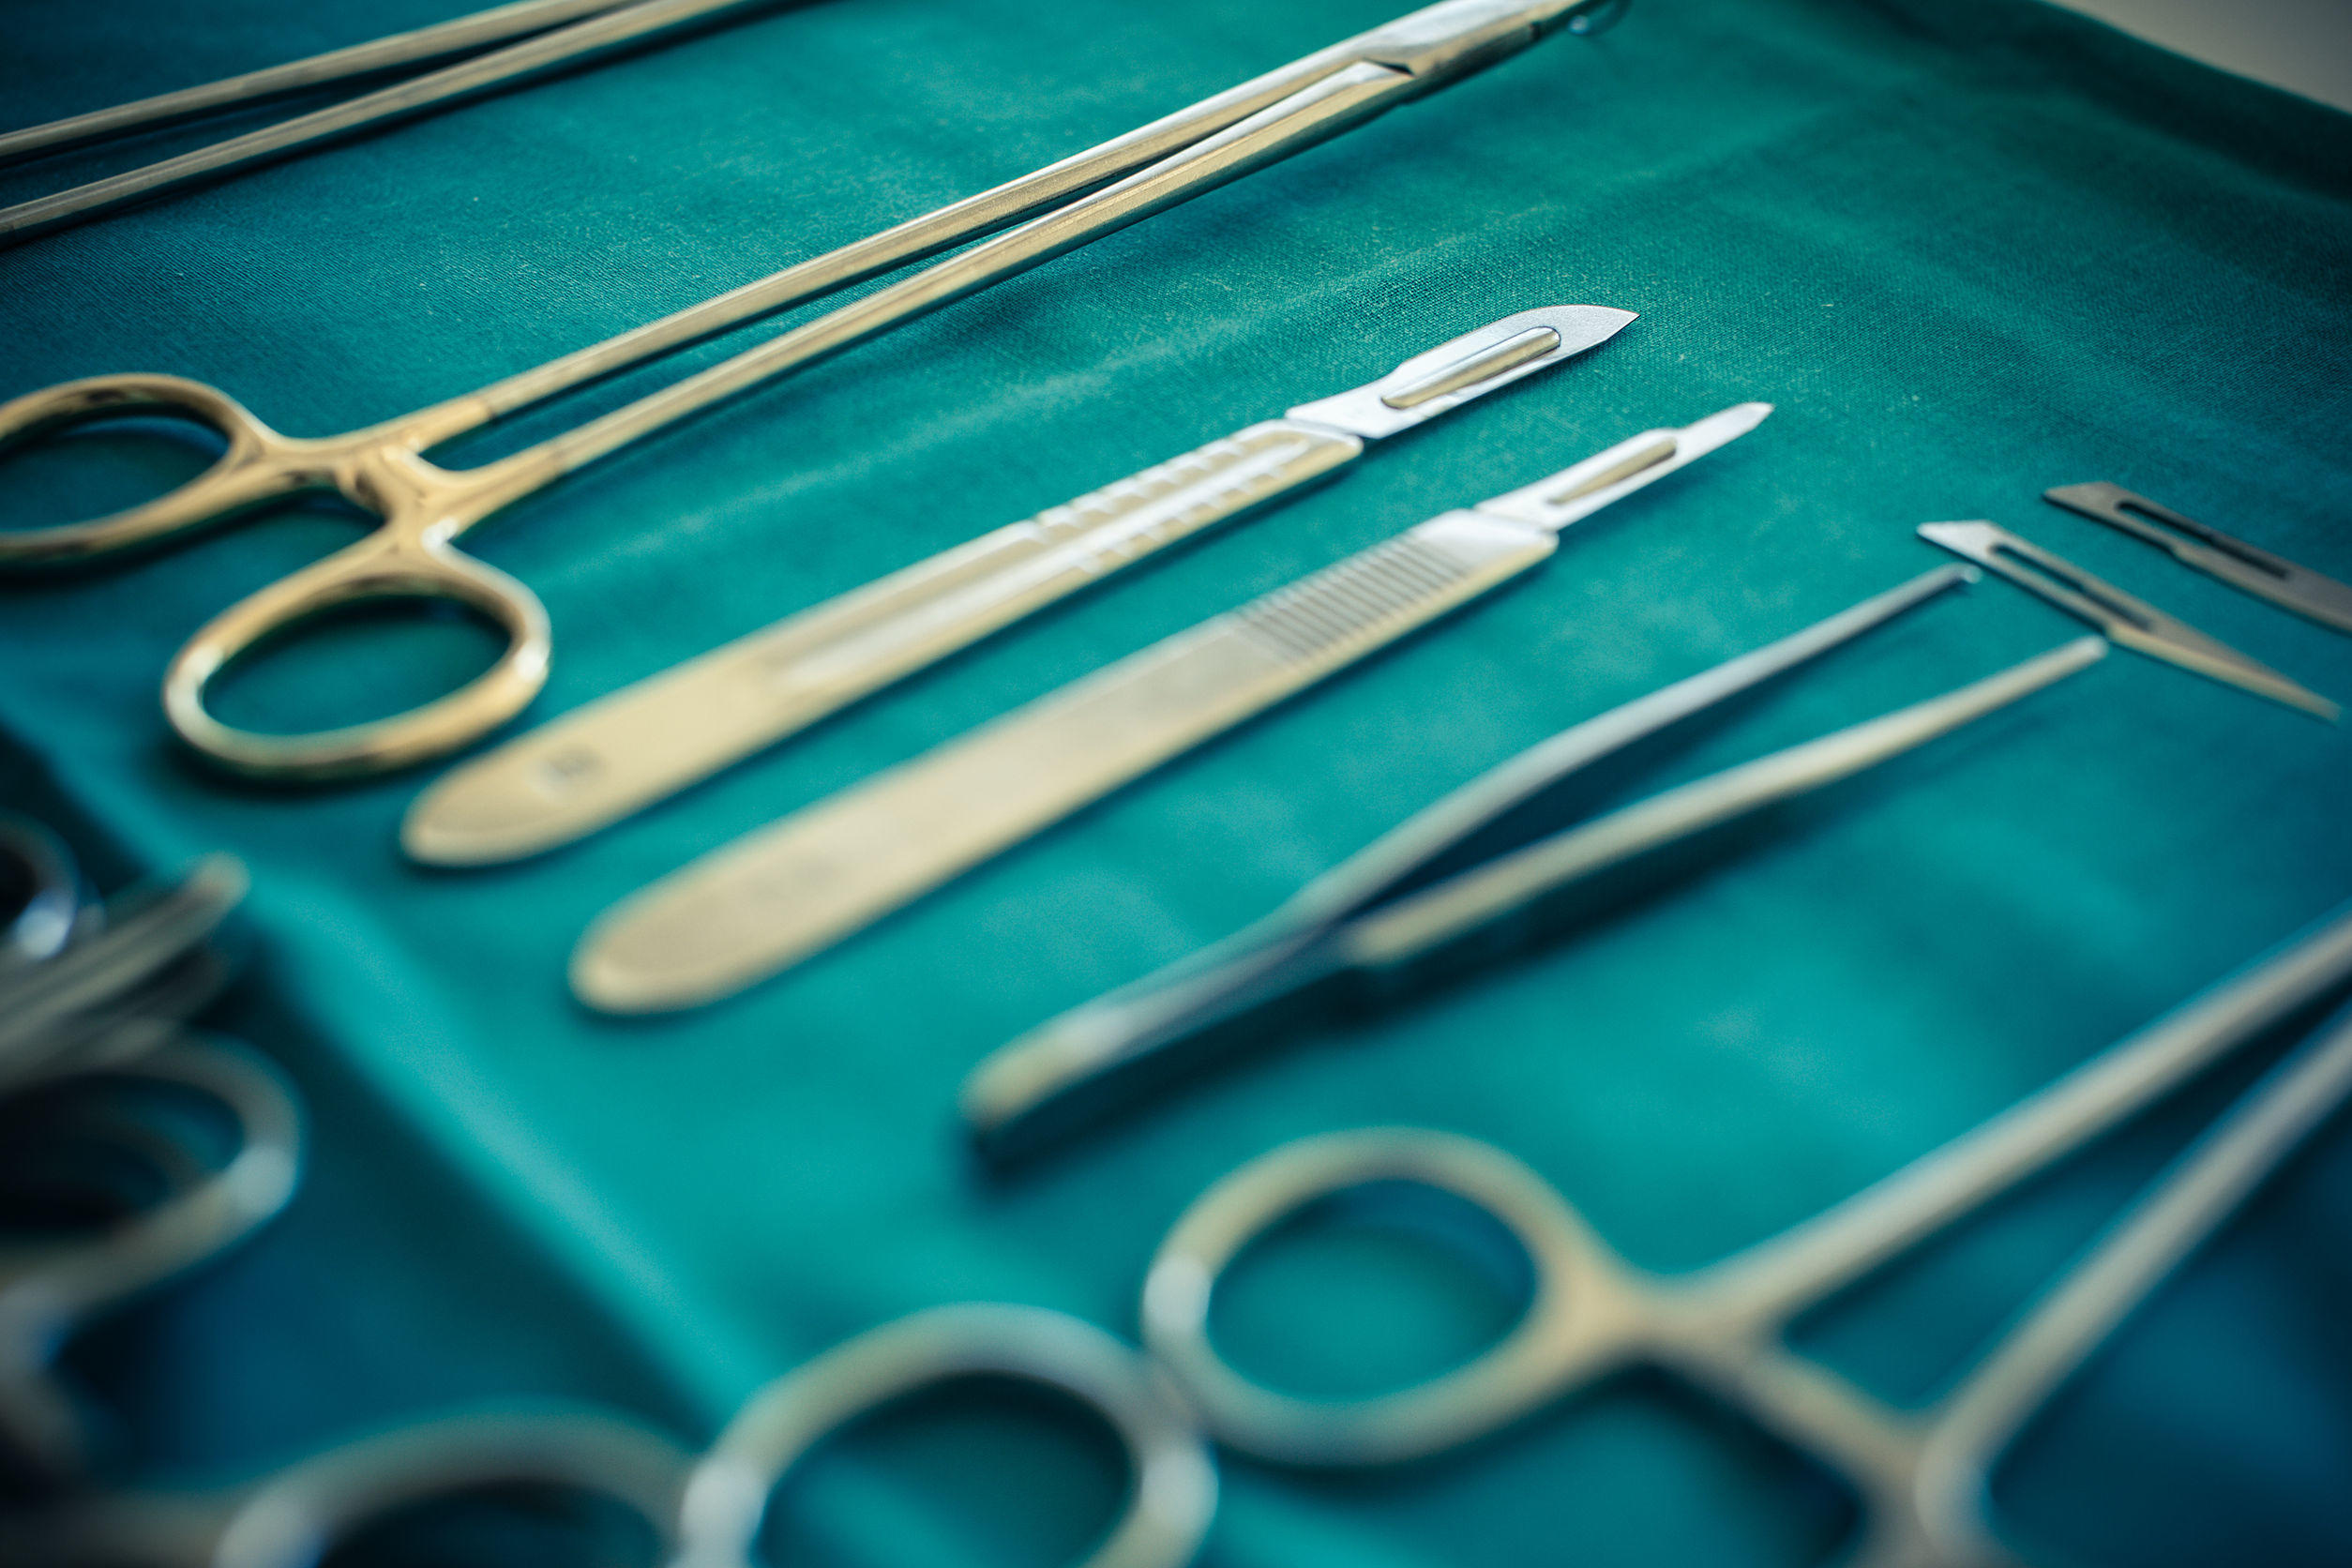 Safety Before Surgery: Five Tips to Consider Before Going Under the Knife